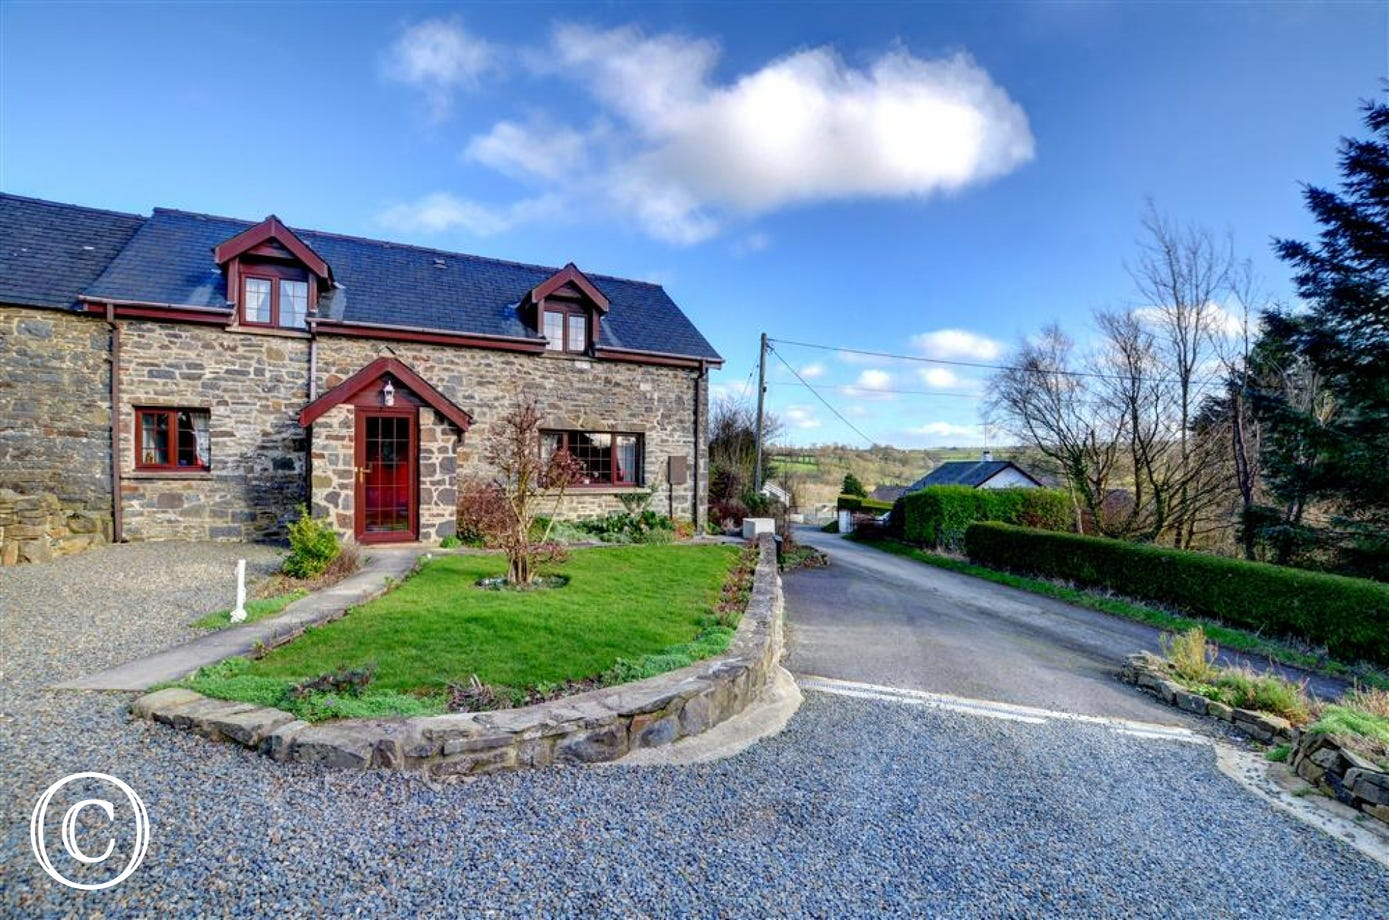 Attractive, detached cottage with lovely stonework